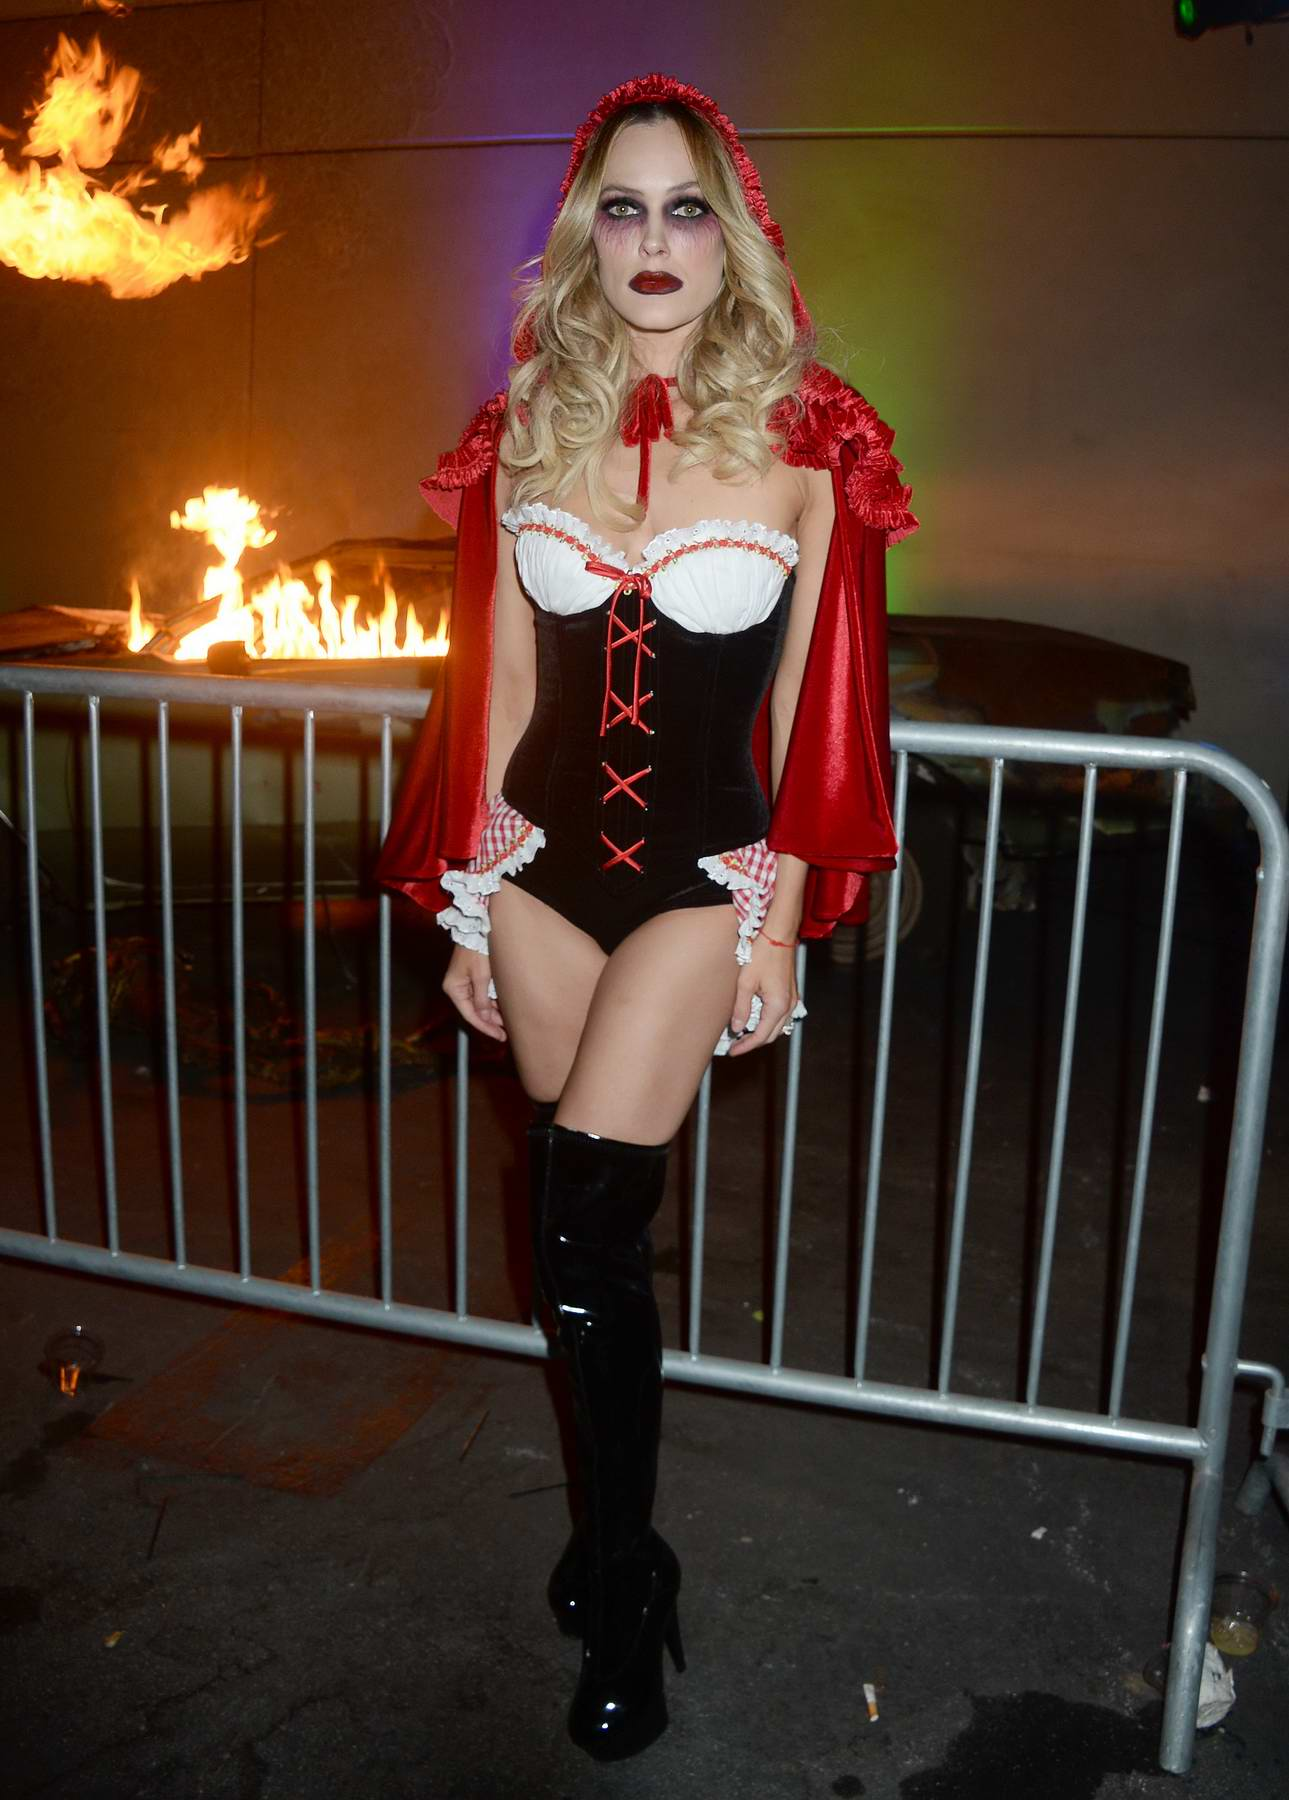 Peta Murgatroyd at the 2017 Maxim Halloween party in Los Angeles